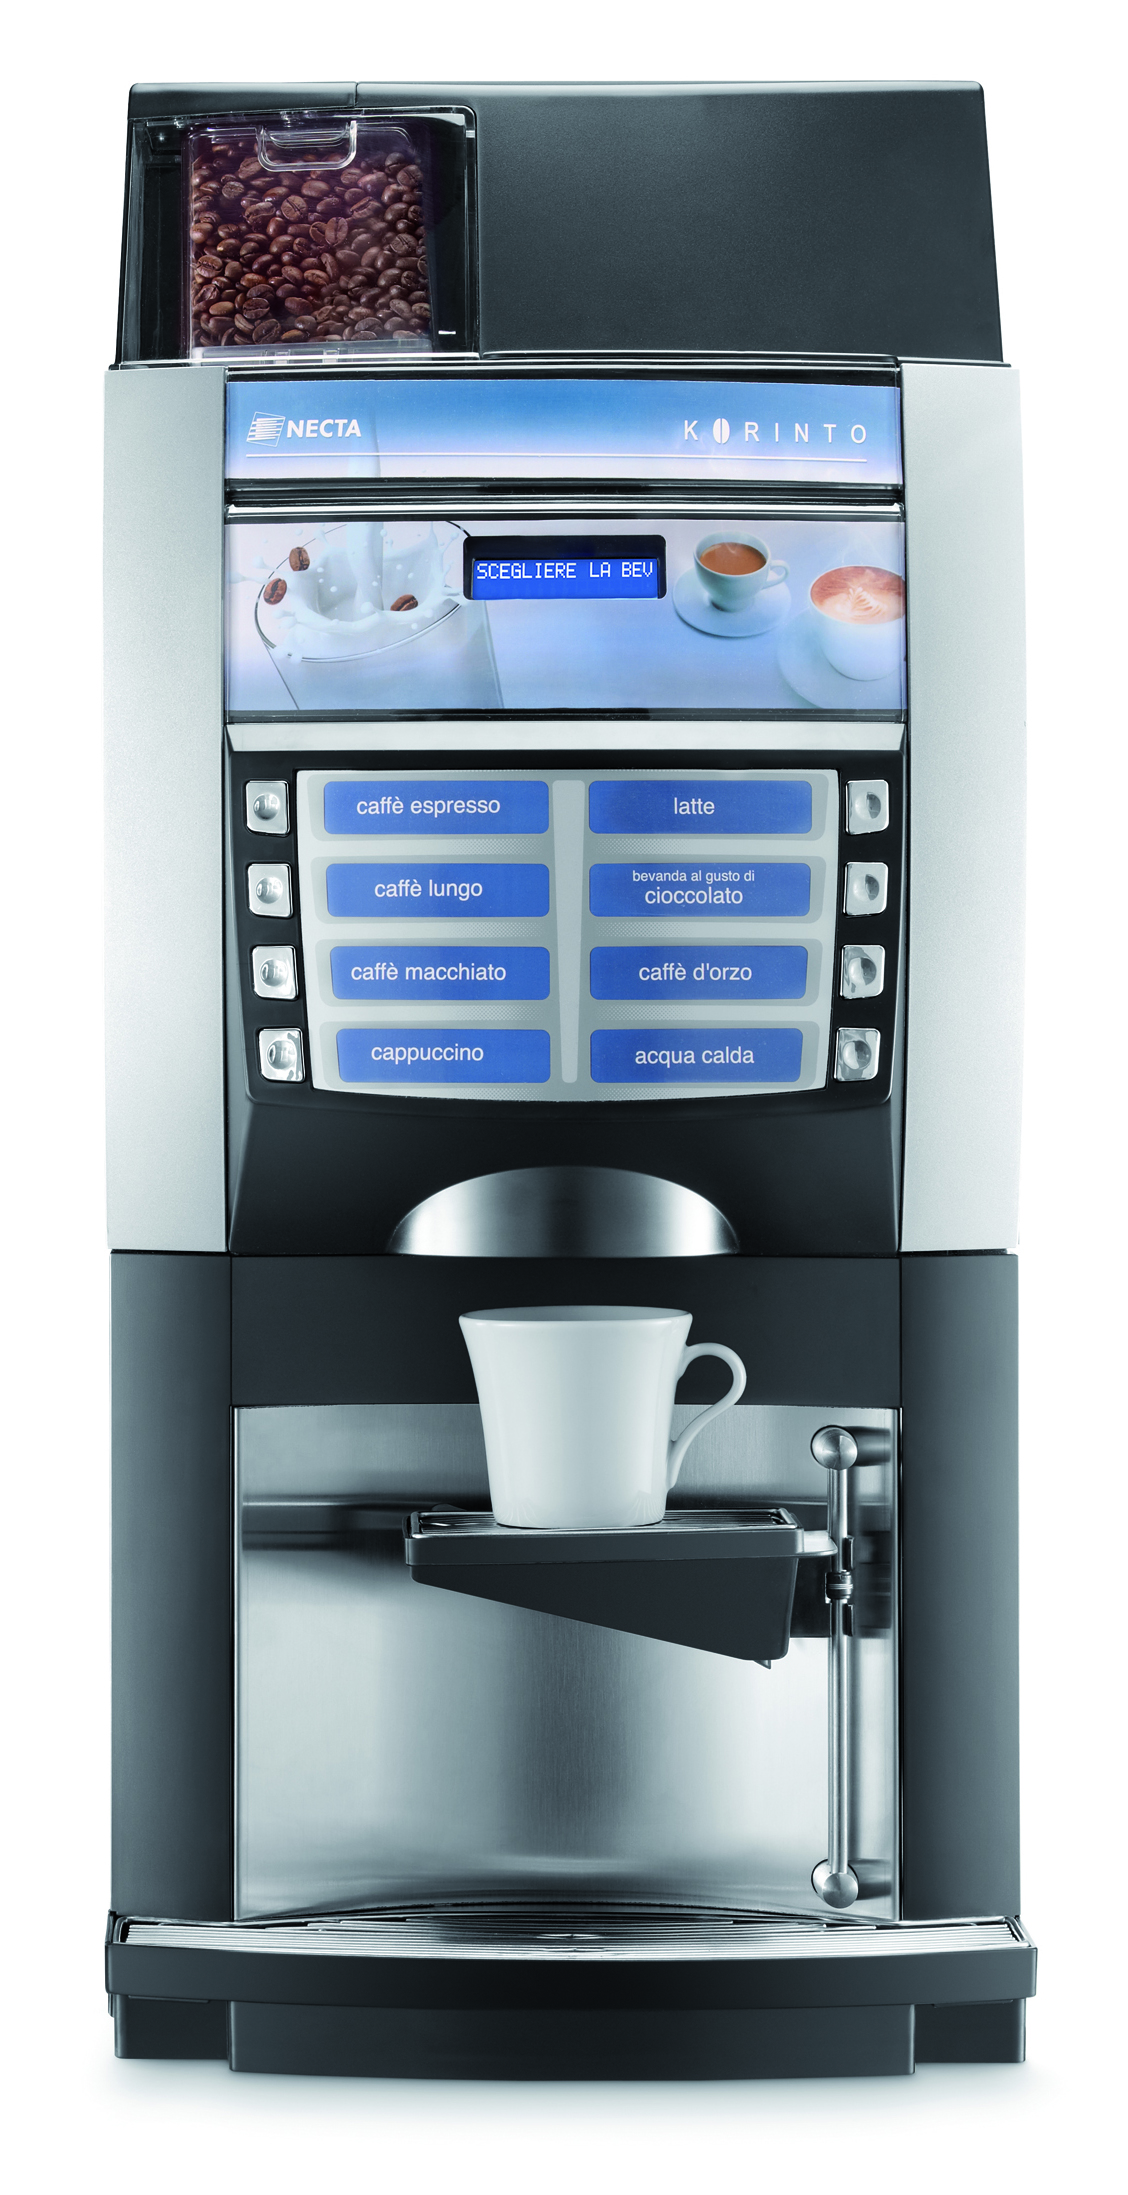 Korinto Espresso Hot Drinks Machine Horeca Hot Drinks